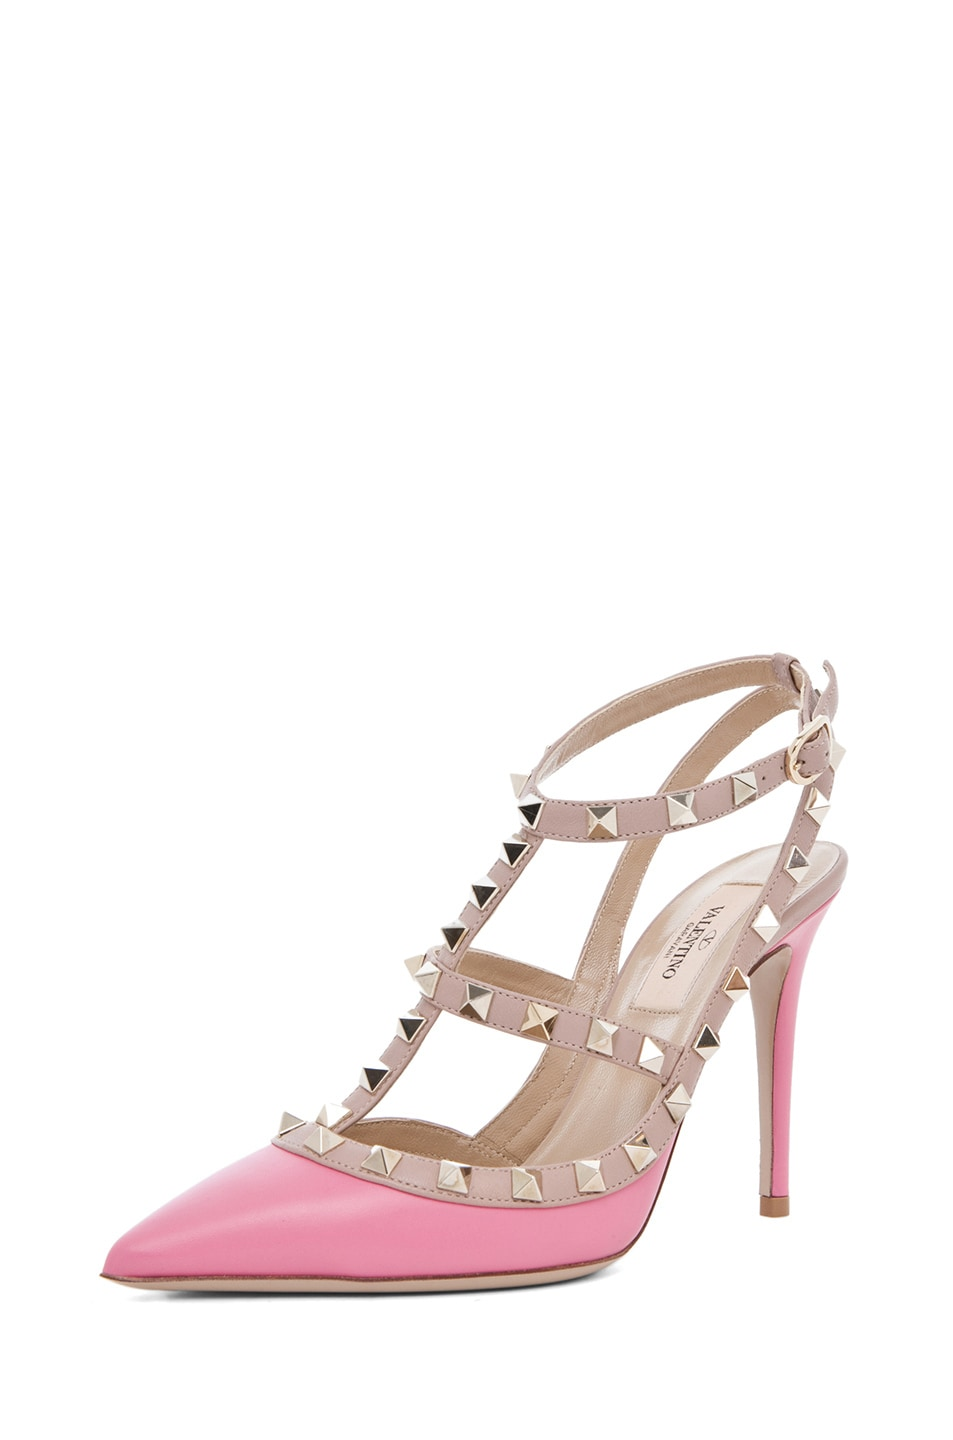 Image 2 of Valentino Rockstud Sling Back T.100 in Passion